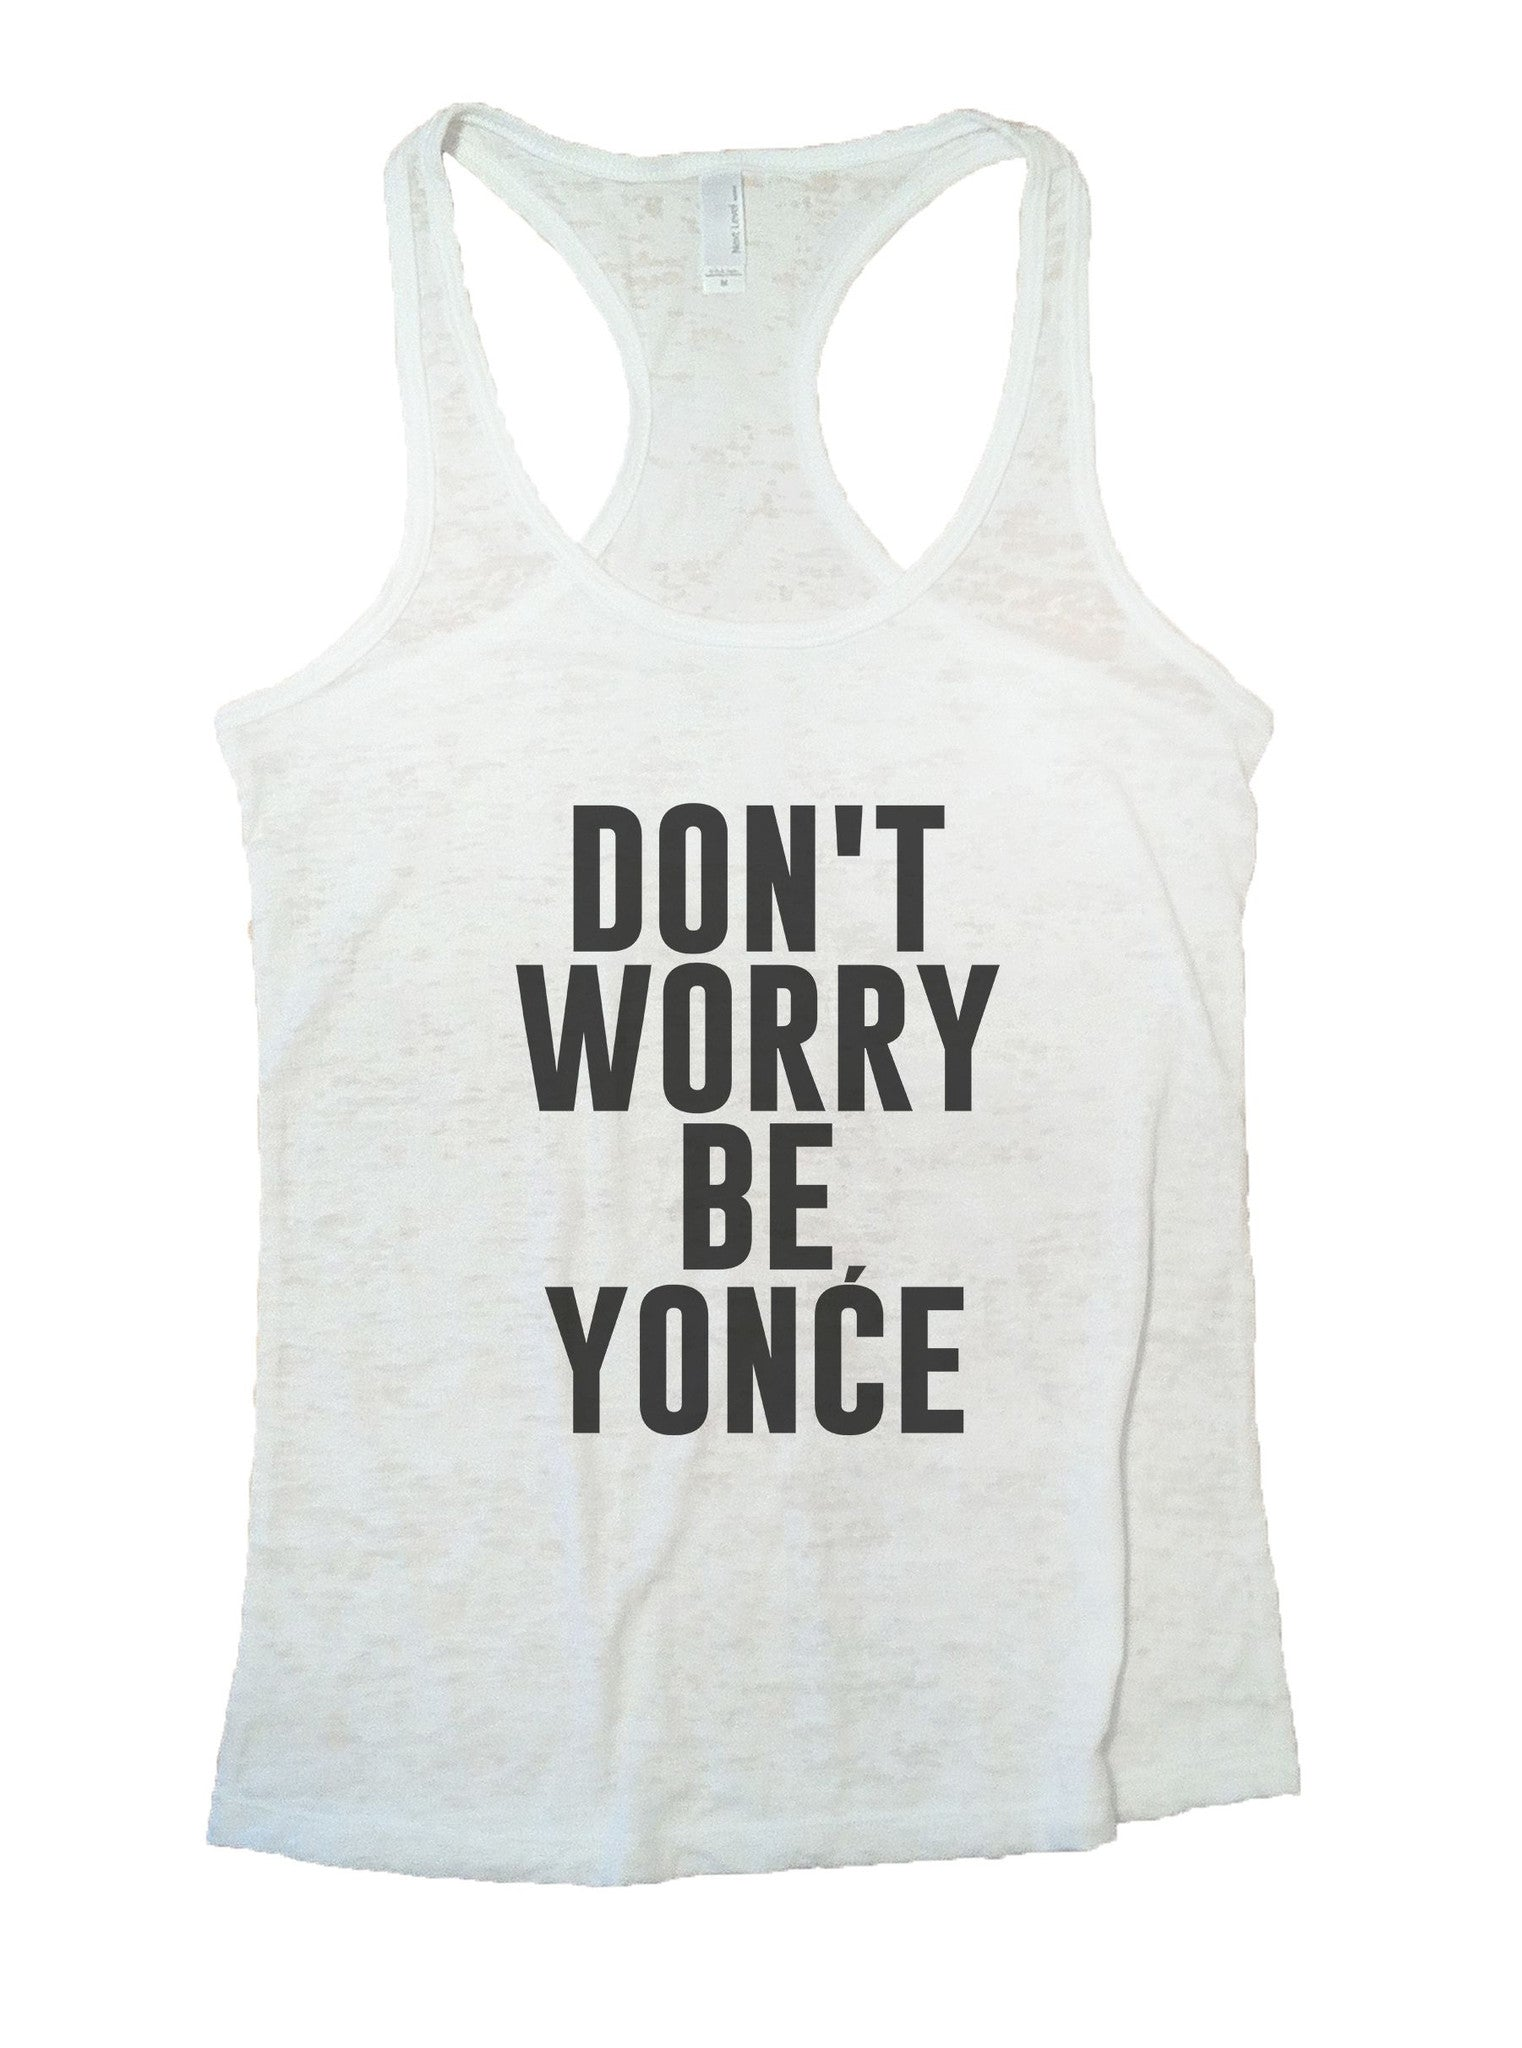 Don't Worry Be Yonce Burnout Tank Top By BurnoutTankTops.com - 934 - Funny Shirts Tank Tops Burnouts and Triblends  - 5